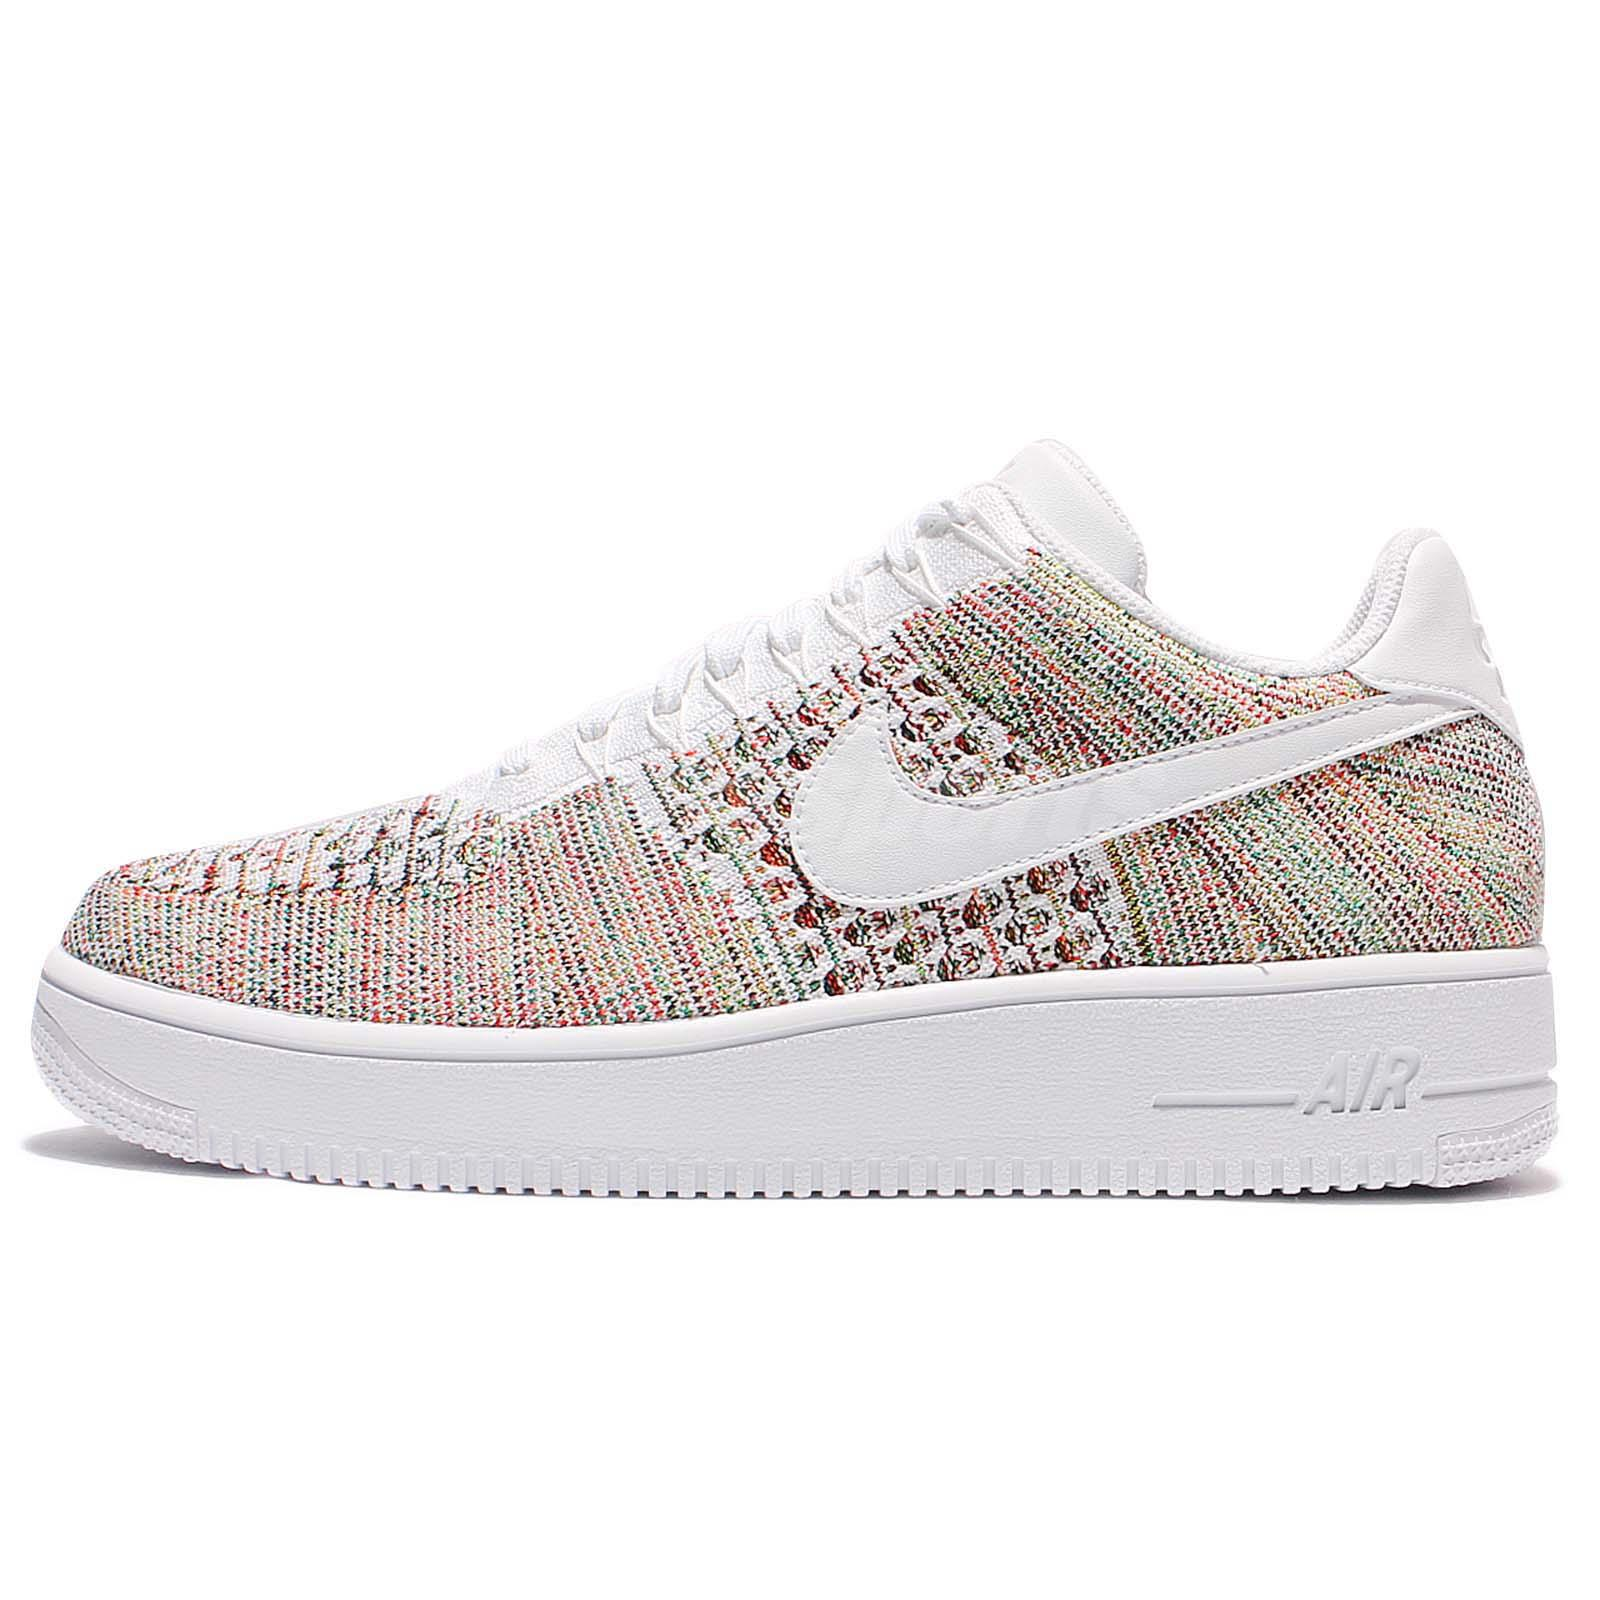 nike air force 1 ultra flyknit low white multicolor nz